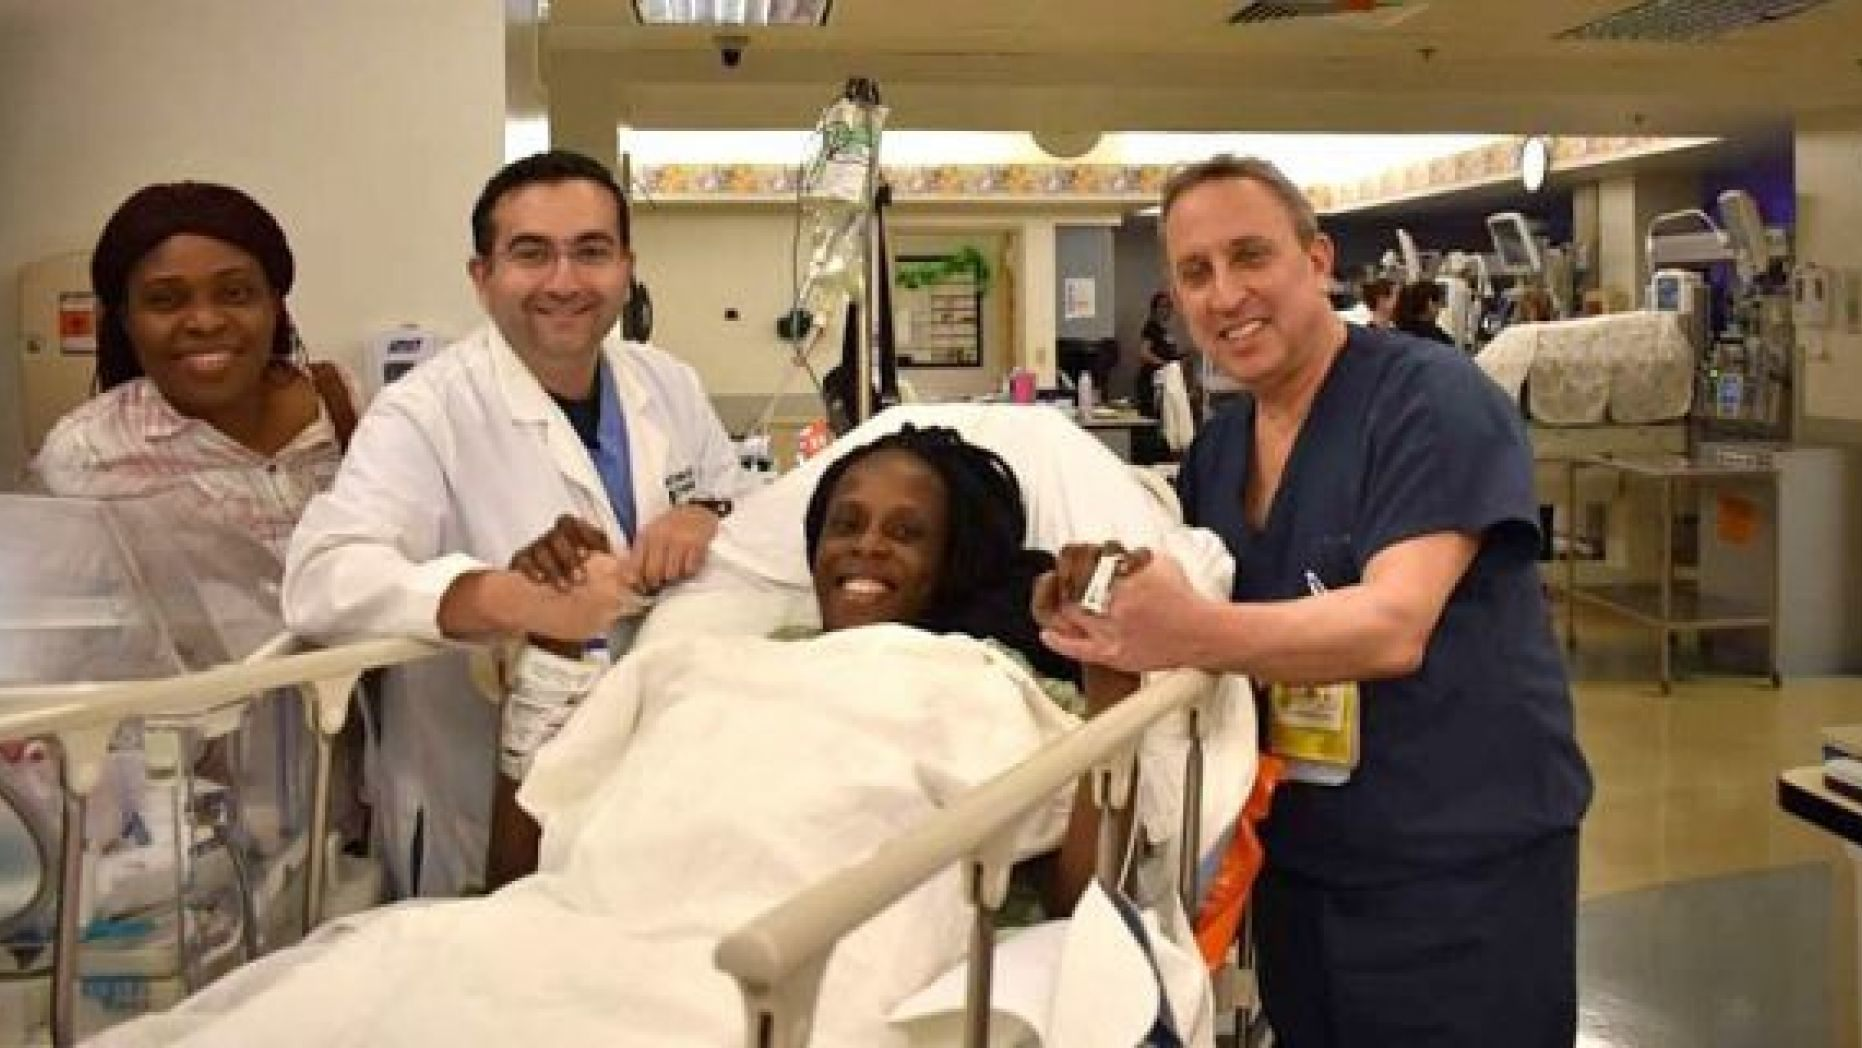 Thelma Chiaka with (l. to r.) relative Ebere Ofor; Dr. Ziad Haidar, perinatologist who delivered the babies; and Dr. Israel Simchowit, neonatologist also on staff at The Woman's Hospital of Texas.